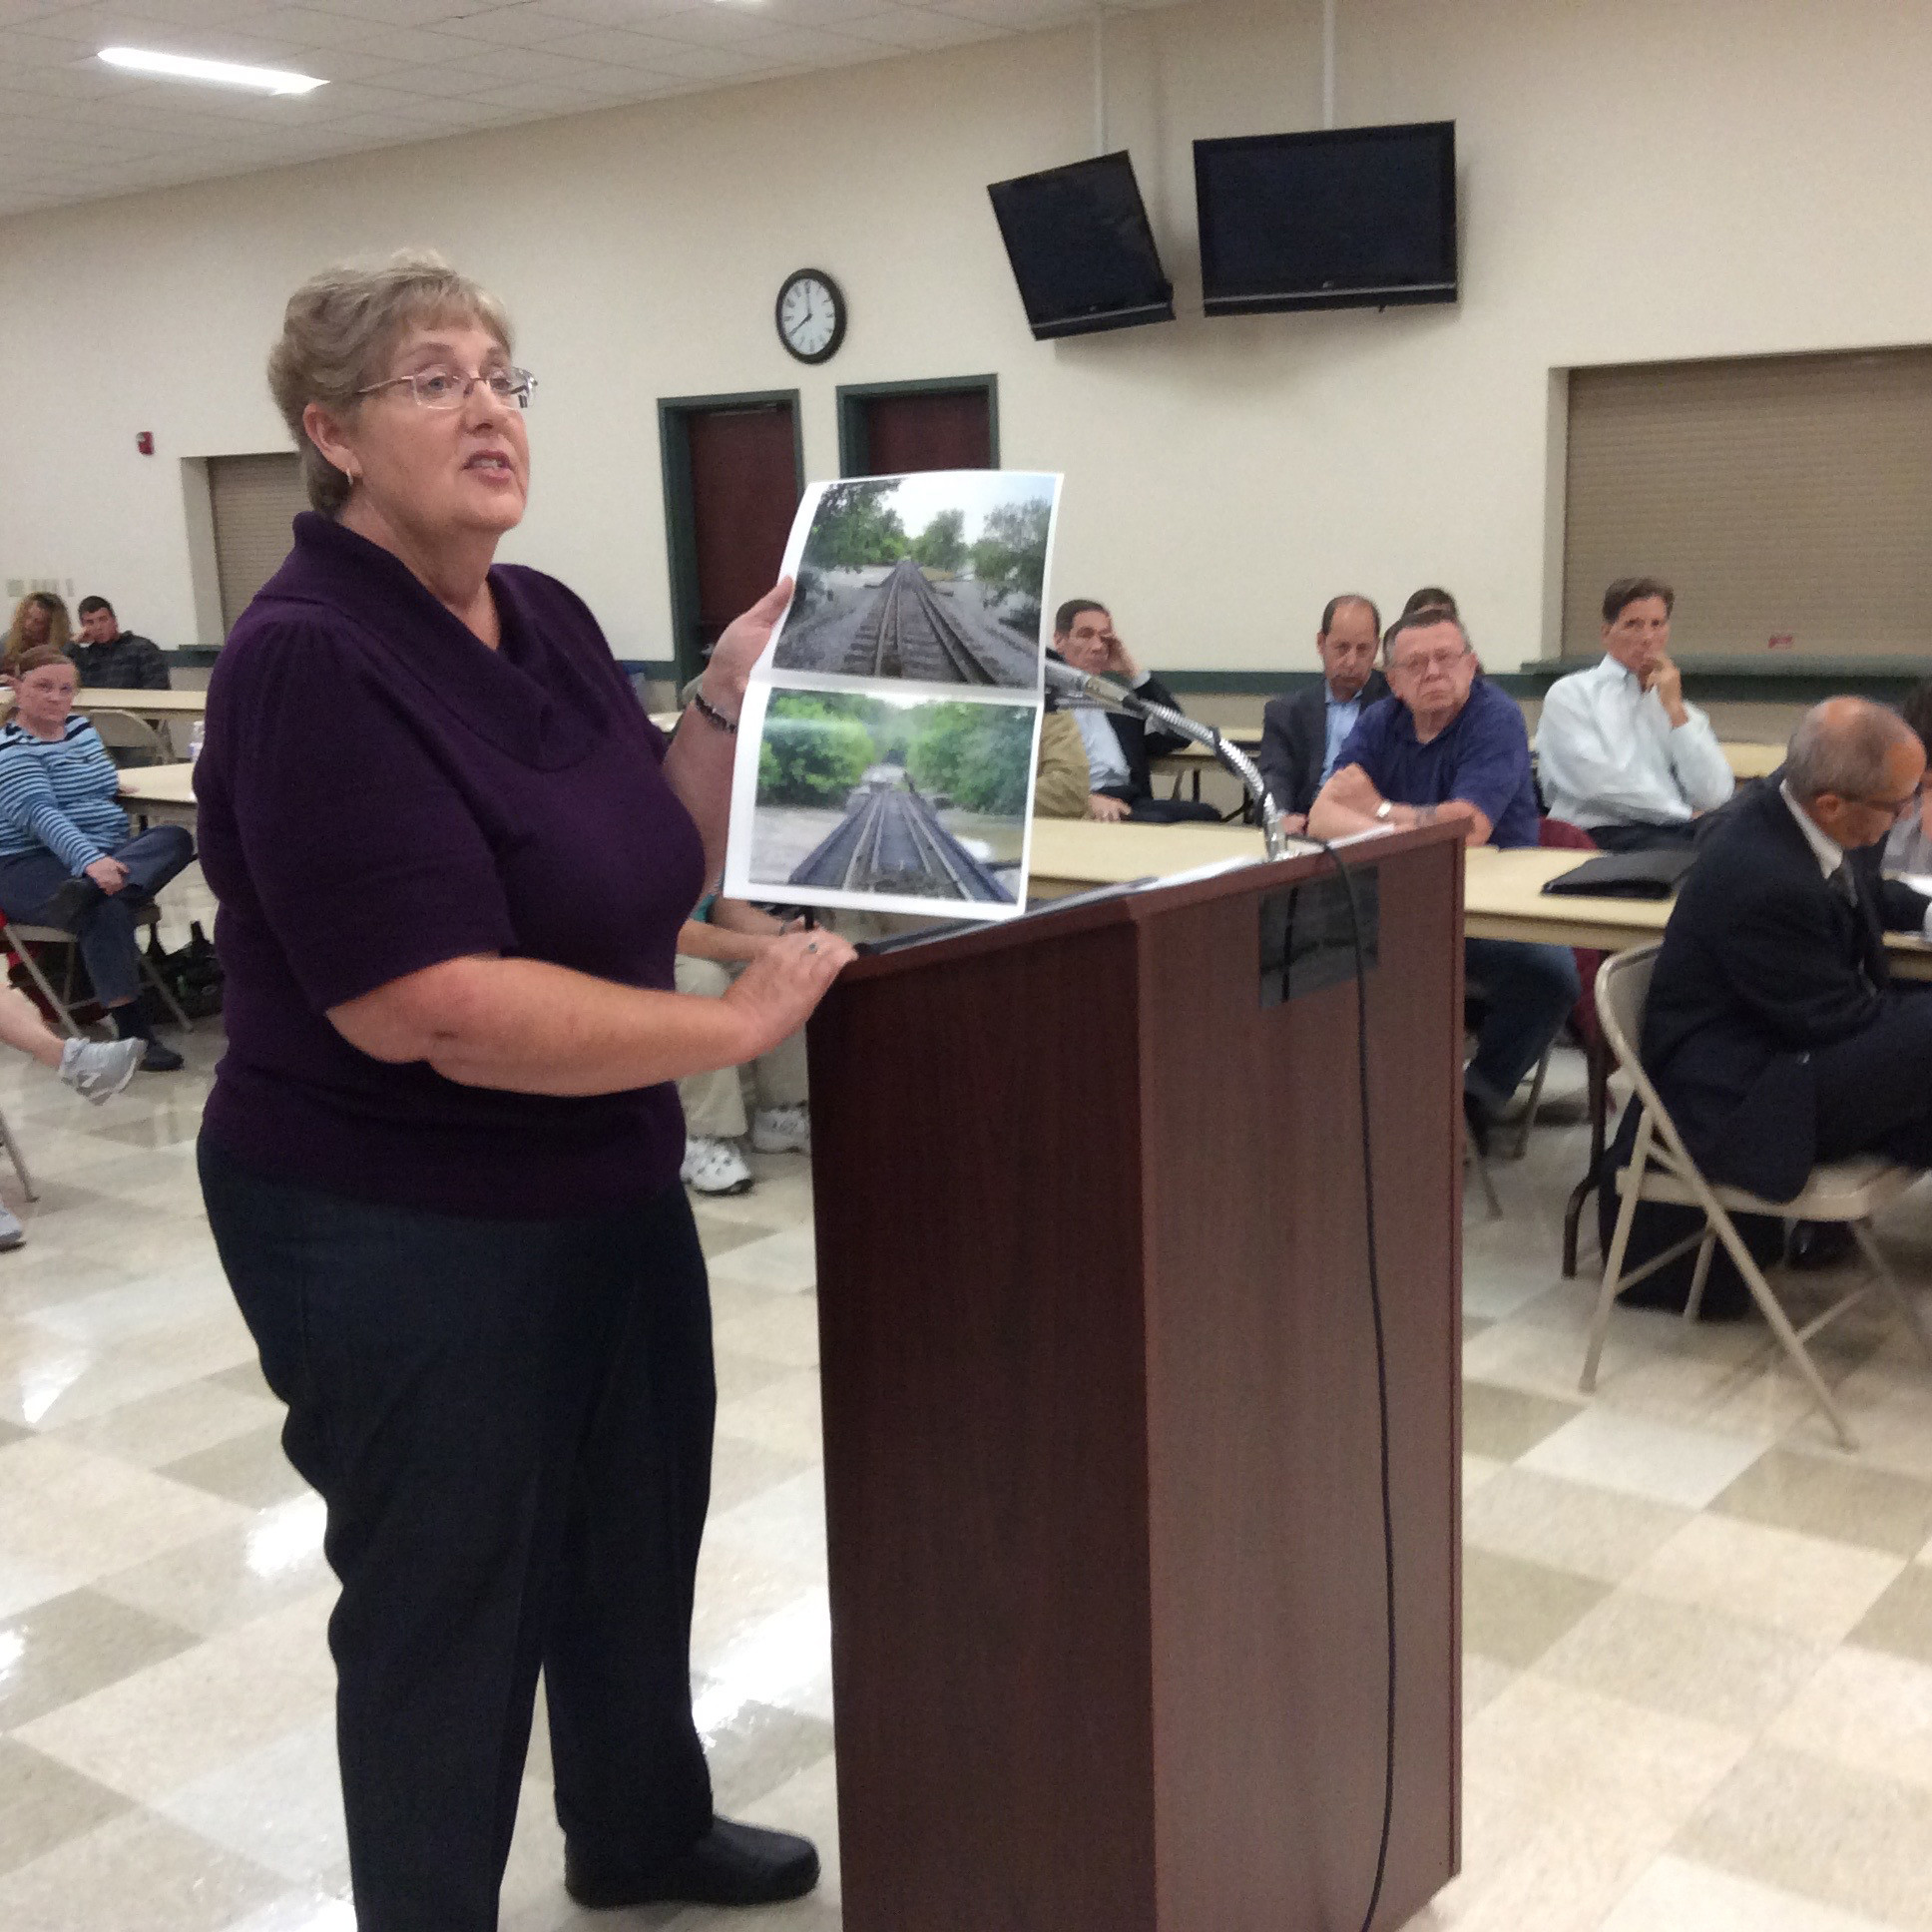 Resident Marjie Hartz believes that flooding from stormwater runoff will get worse if UPS is allowed to build its hub in Lower Swatara Township.